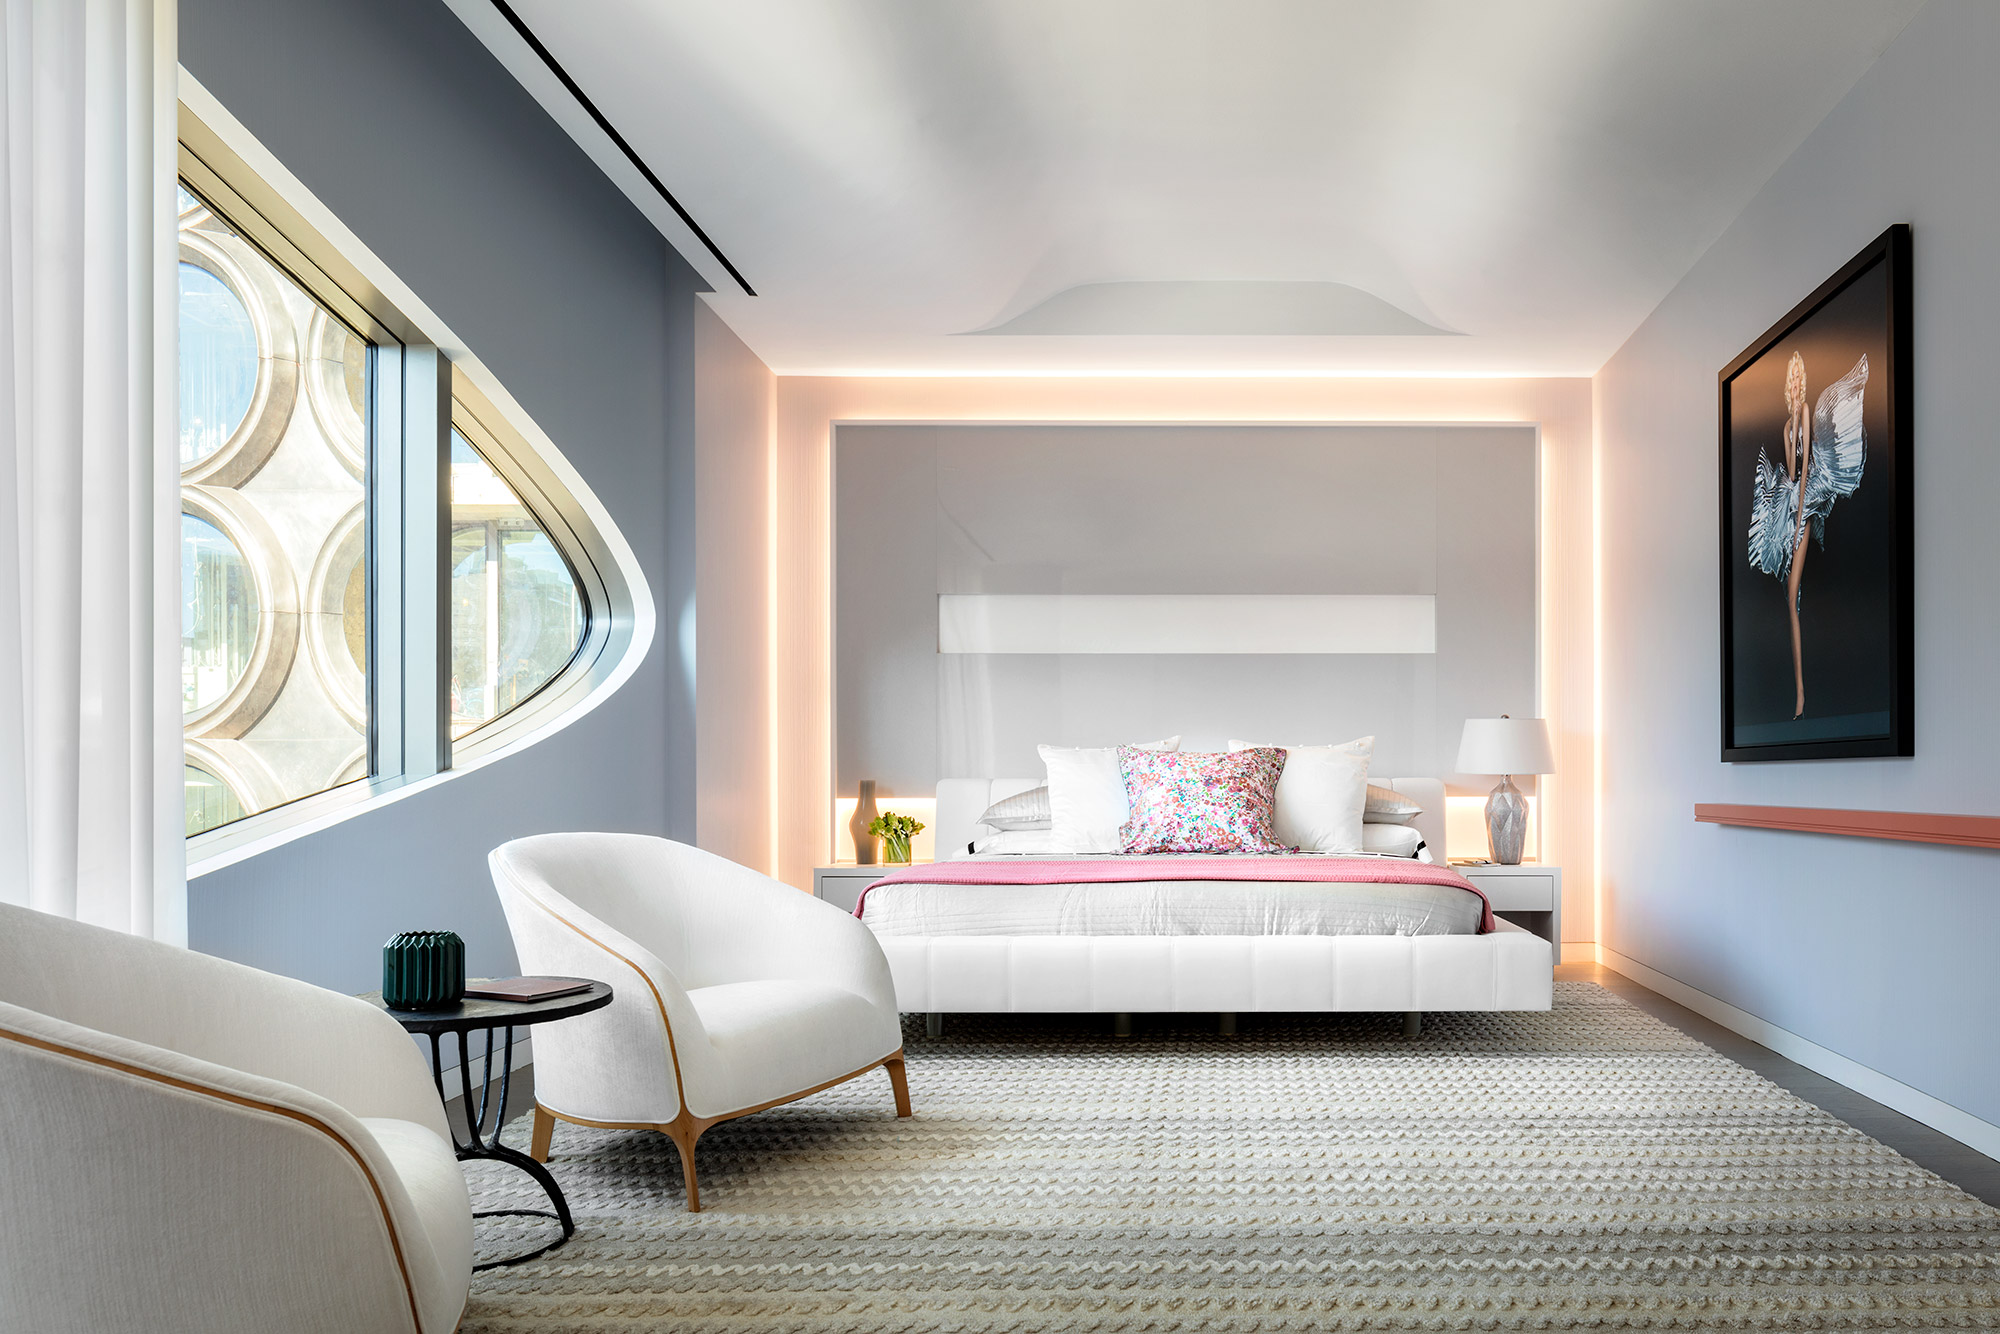 Revealed two interiors of zaha hadid 39 s 520 west 28th for Interior design zaha hadid